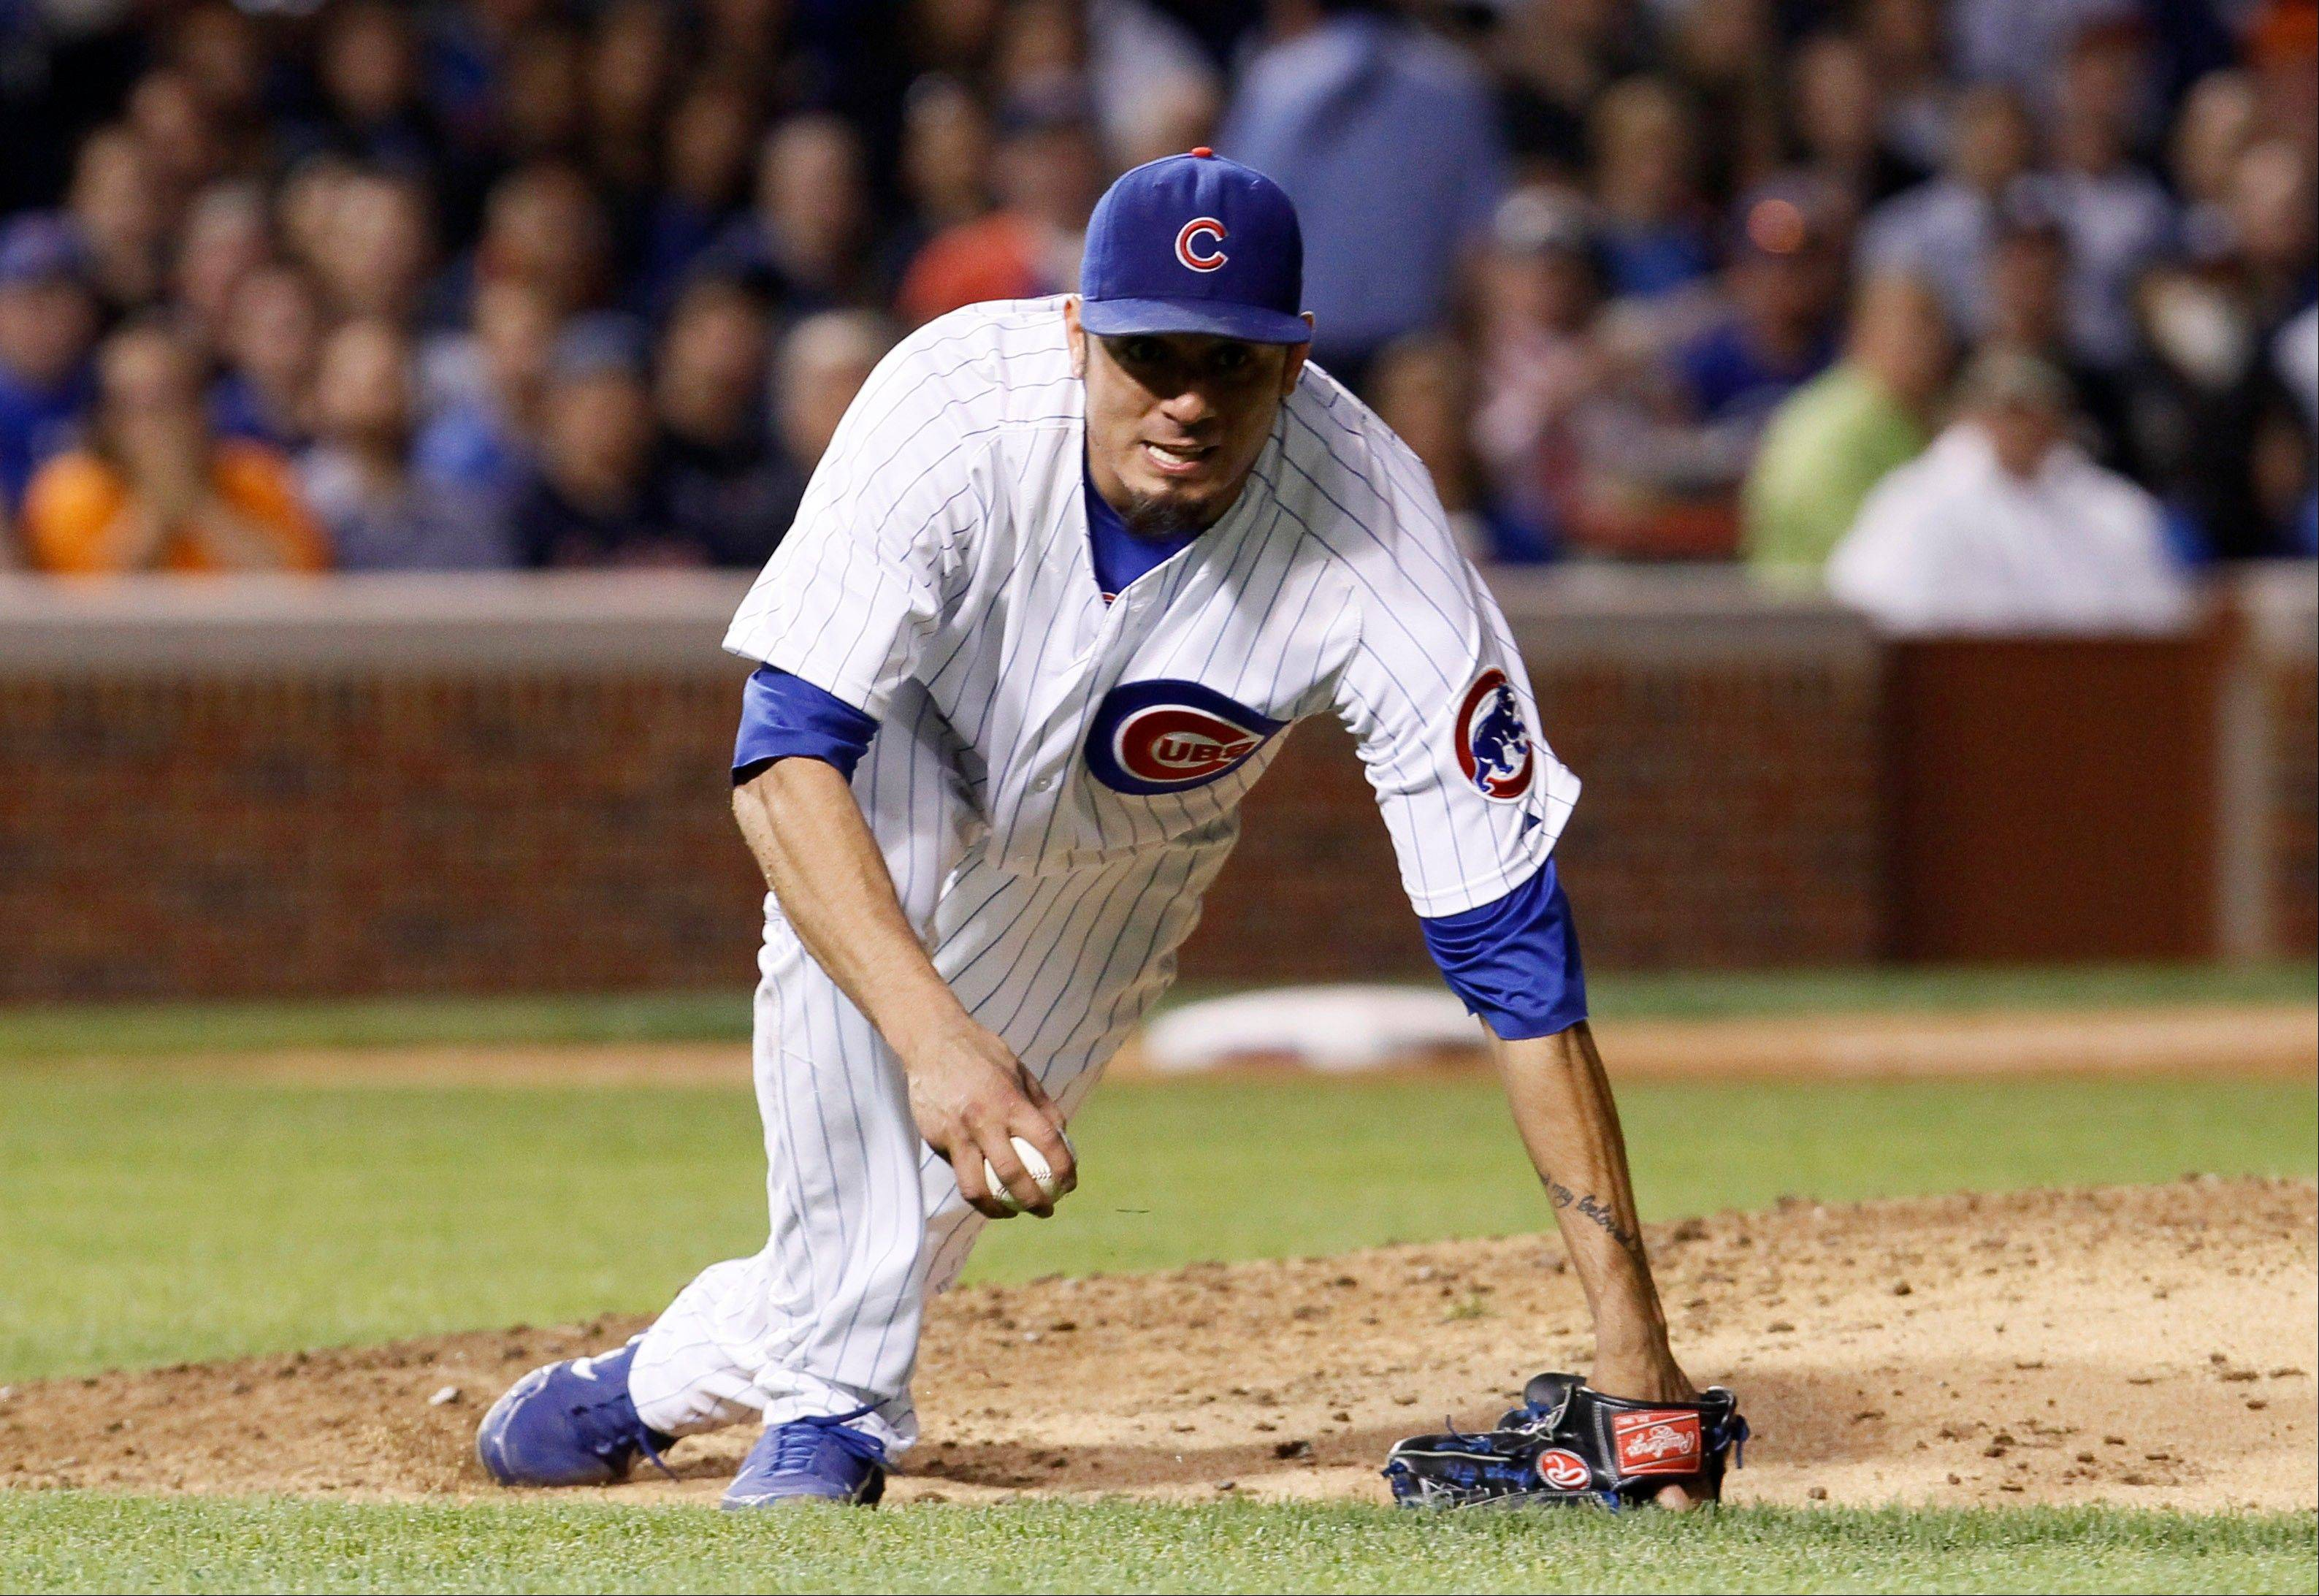 Cubs starting pitcher Matt Garza recovers after being knocked to the ground fielding a ball hit by the Detroit Tigers' Ramon Santiago Wednesday during the sixth inning at Wrigley Field. Jhonny Peralta scored on the play.